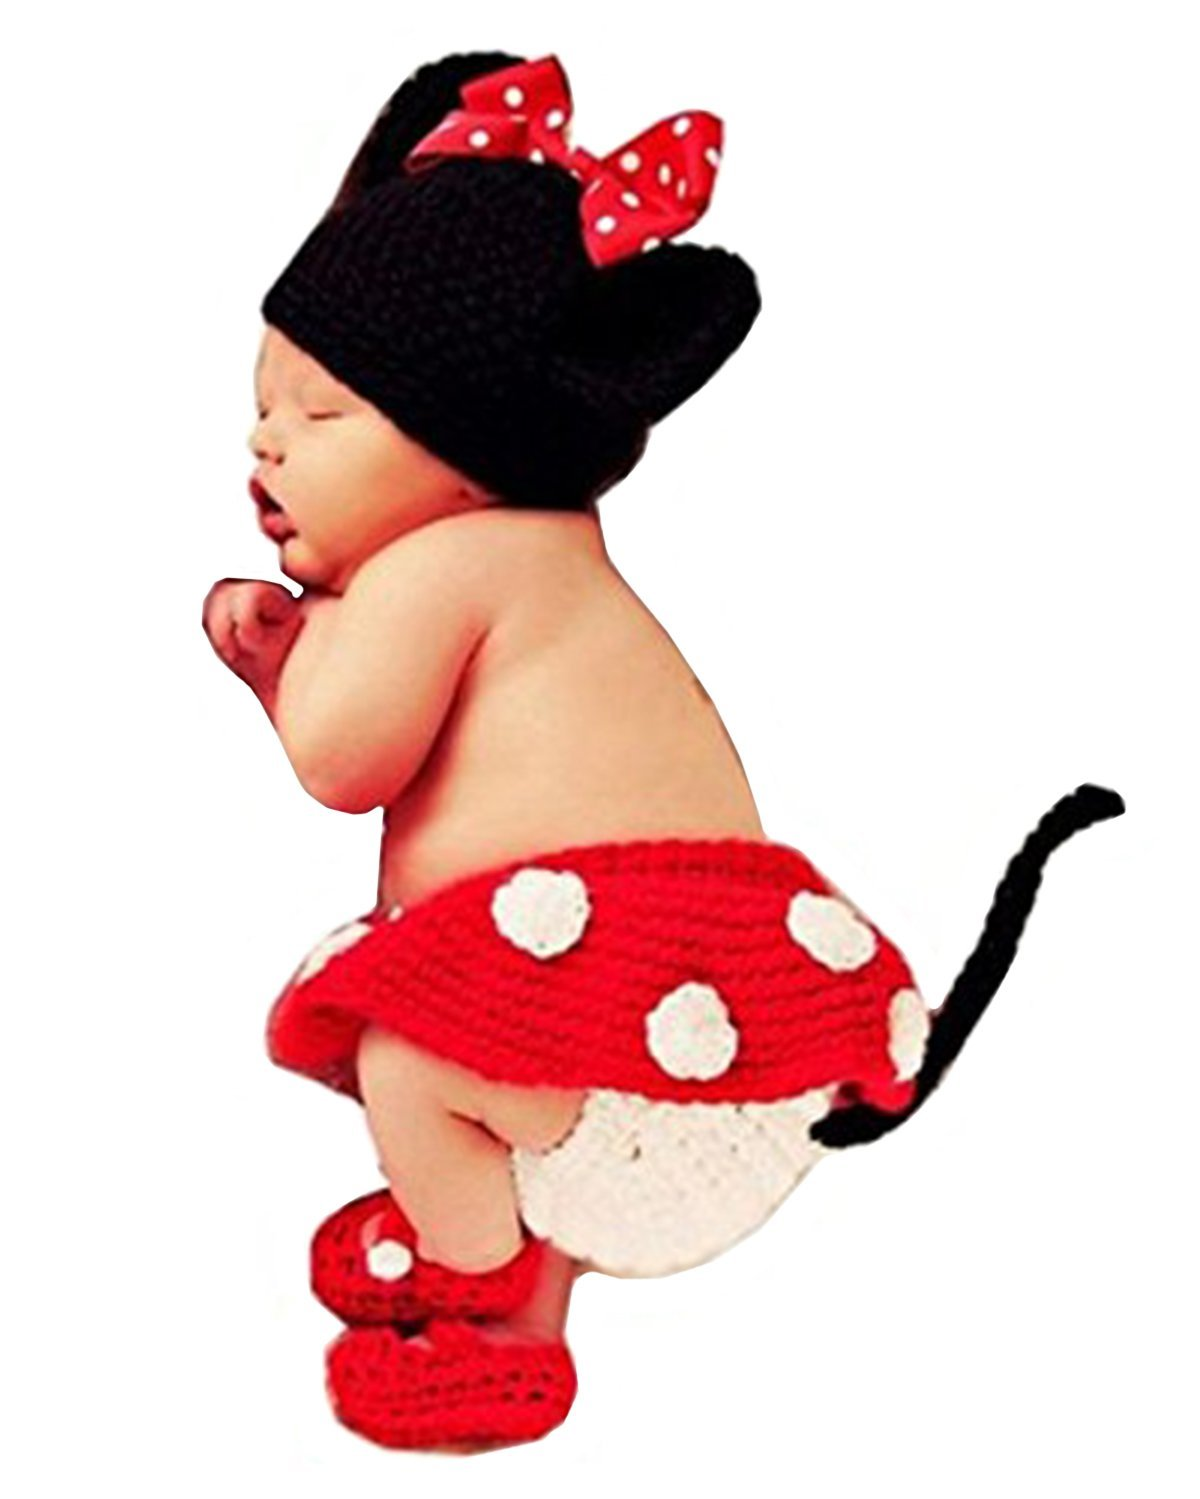 Amazon.com  ZEAMO Fashion Unisex Newborn Boy Girl Crochet Knitted Baby Costume Set Photography Photo Prop Outfits (Mickey Mouse)  Baby  sc 1 st  Amazon.com & Amazon.com : ZEAMO Fashion Unisex Newborn Boy Girl Crochet Knitted ...